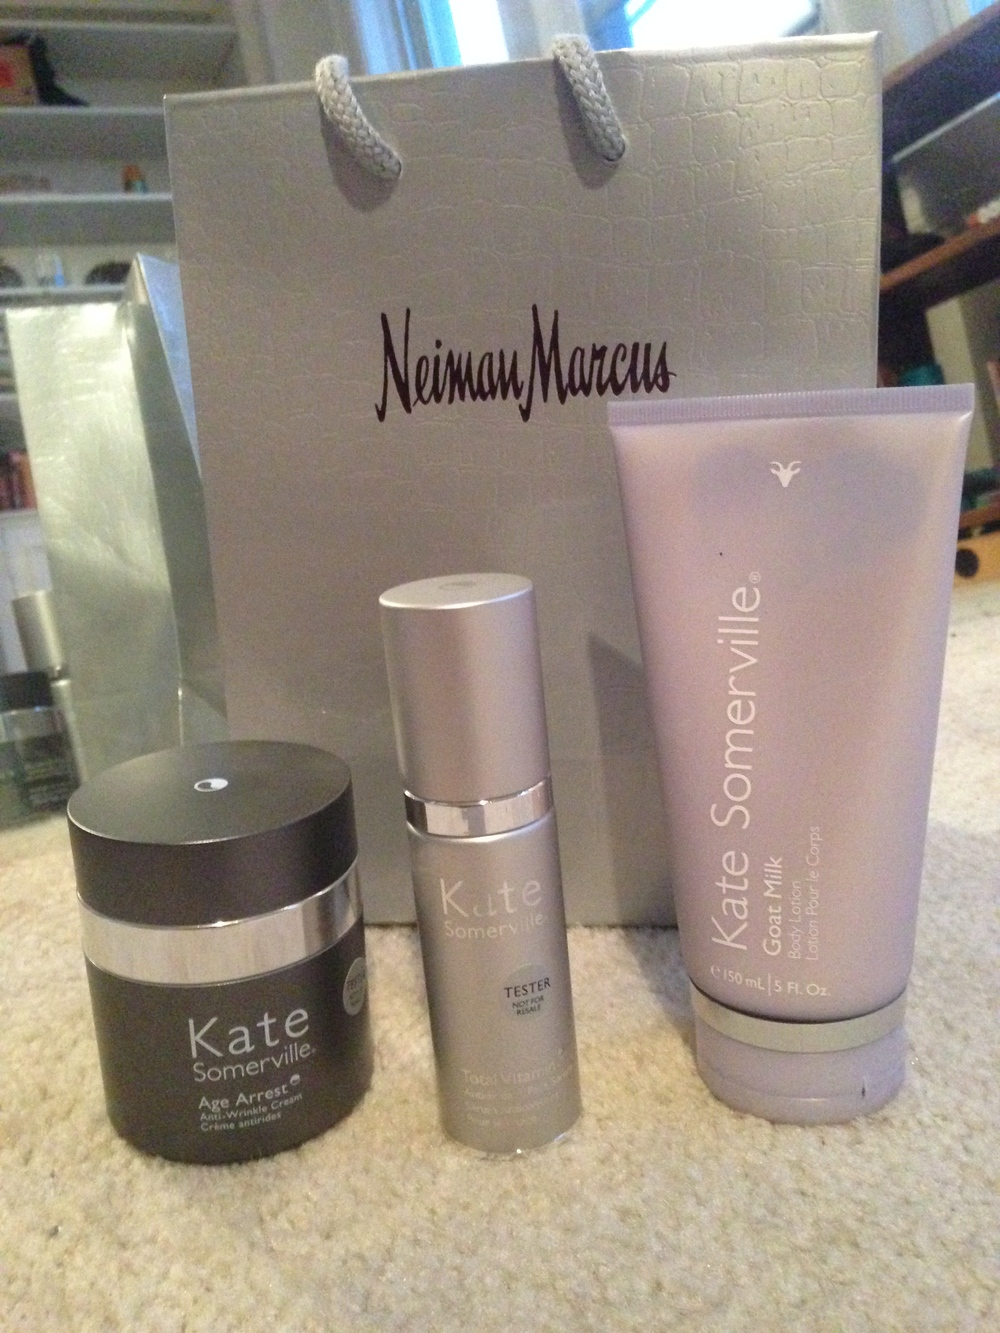 When I opened up my gift, I was pleasantly surprised! Normally you win a pen or a sticker...not at Neiman Marcus...you win Kate Somerville! I've already started using the products and LOVE them!